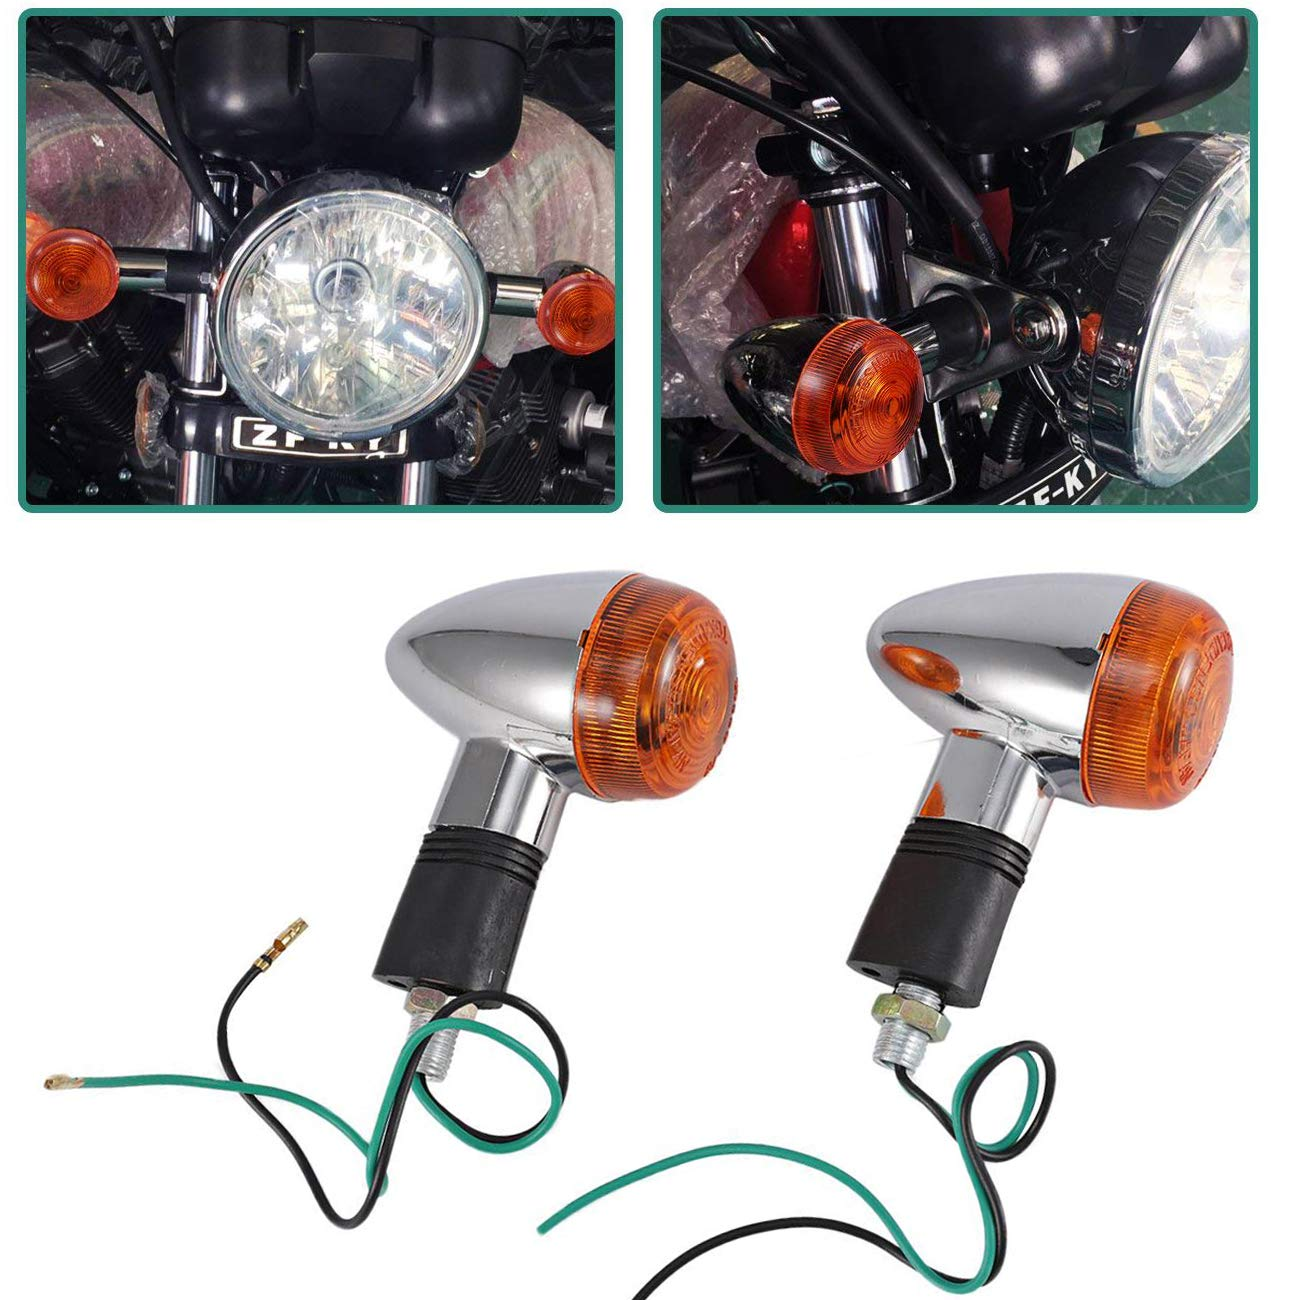 2x smoke motorcycle LED turn signal indicator light Harley chopper bobber chrome